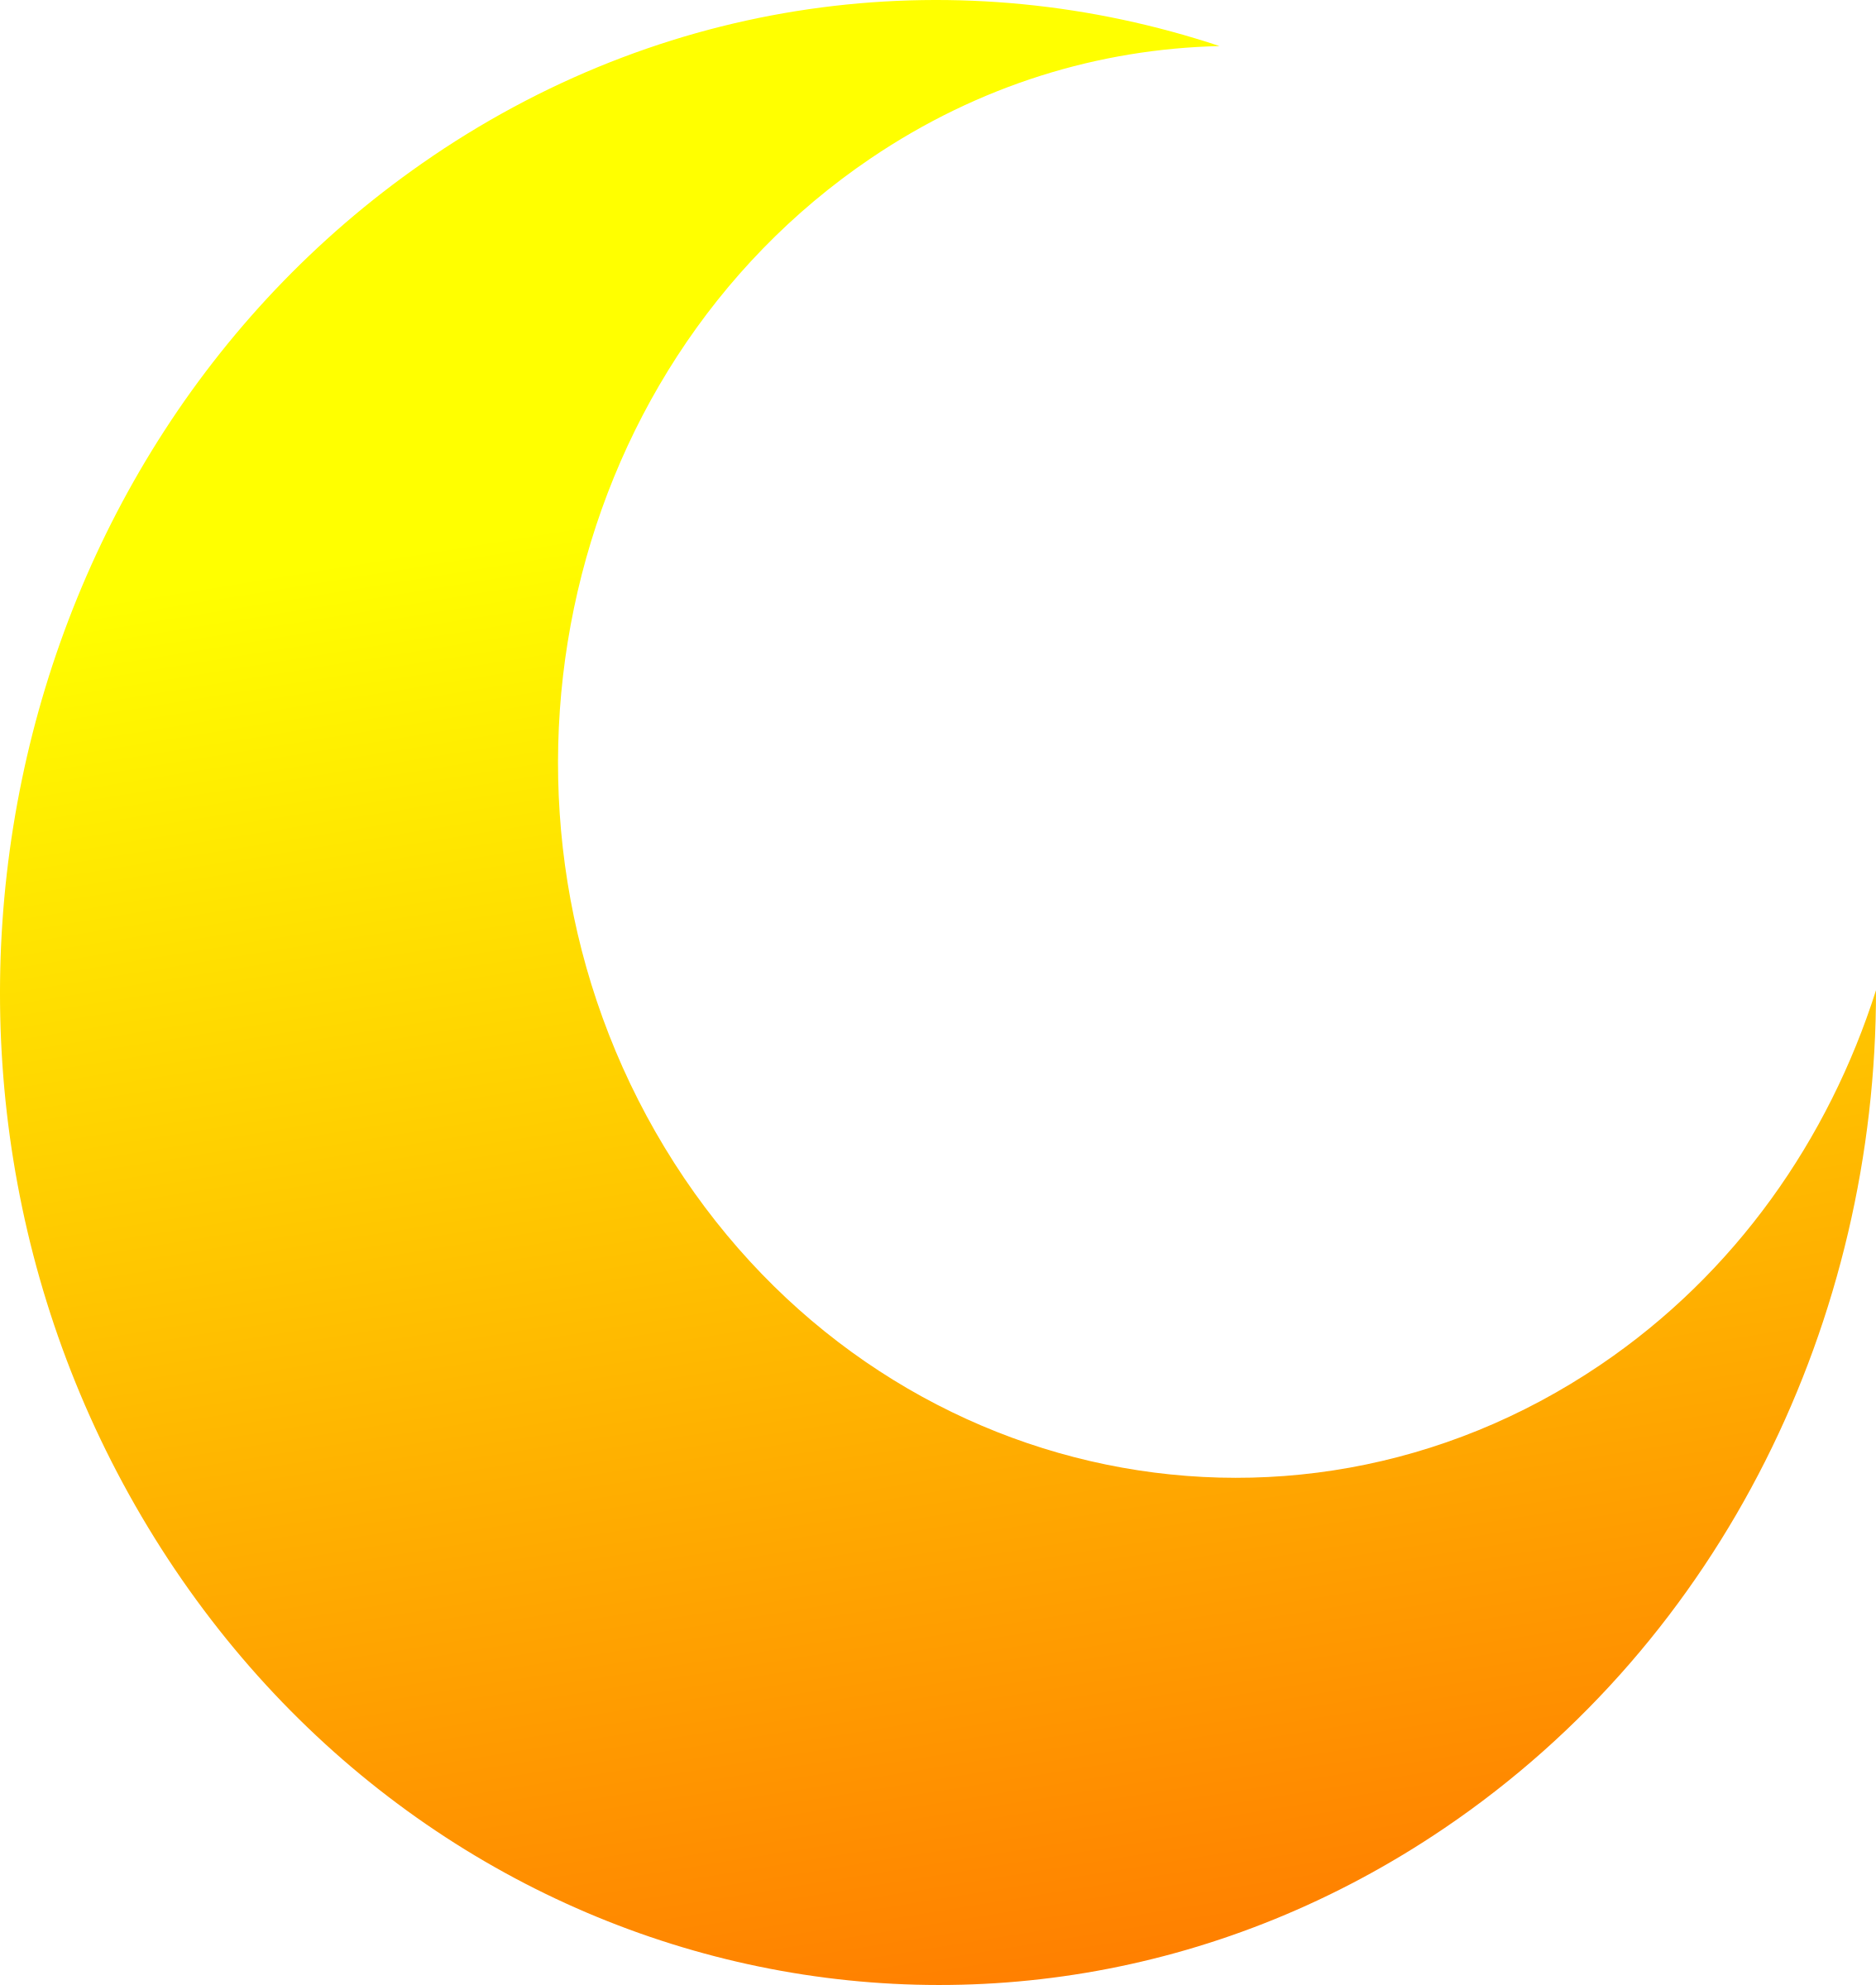 Moon vector clipart image royalty free Yellow Crescent Half Moon Vector Clipart image - Free stock photo ... image royalty free